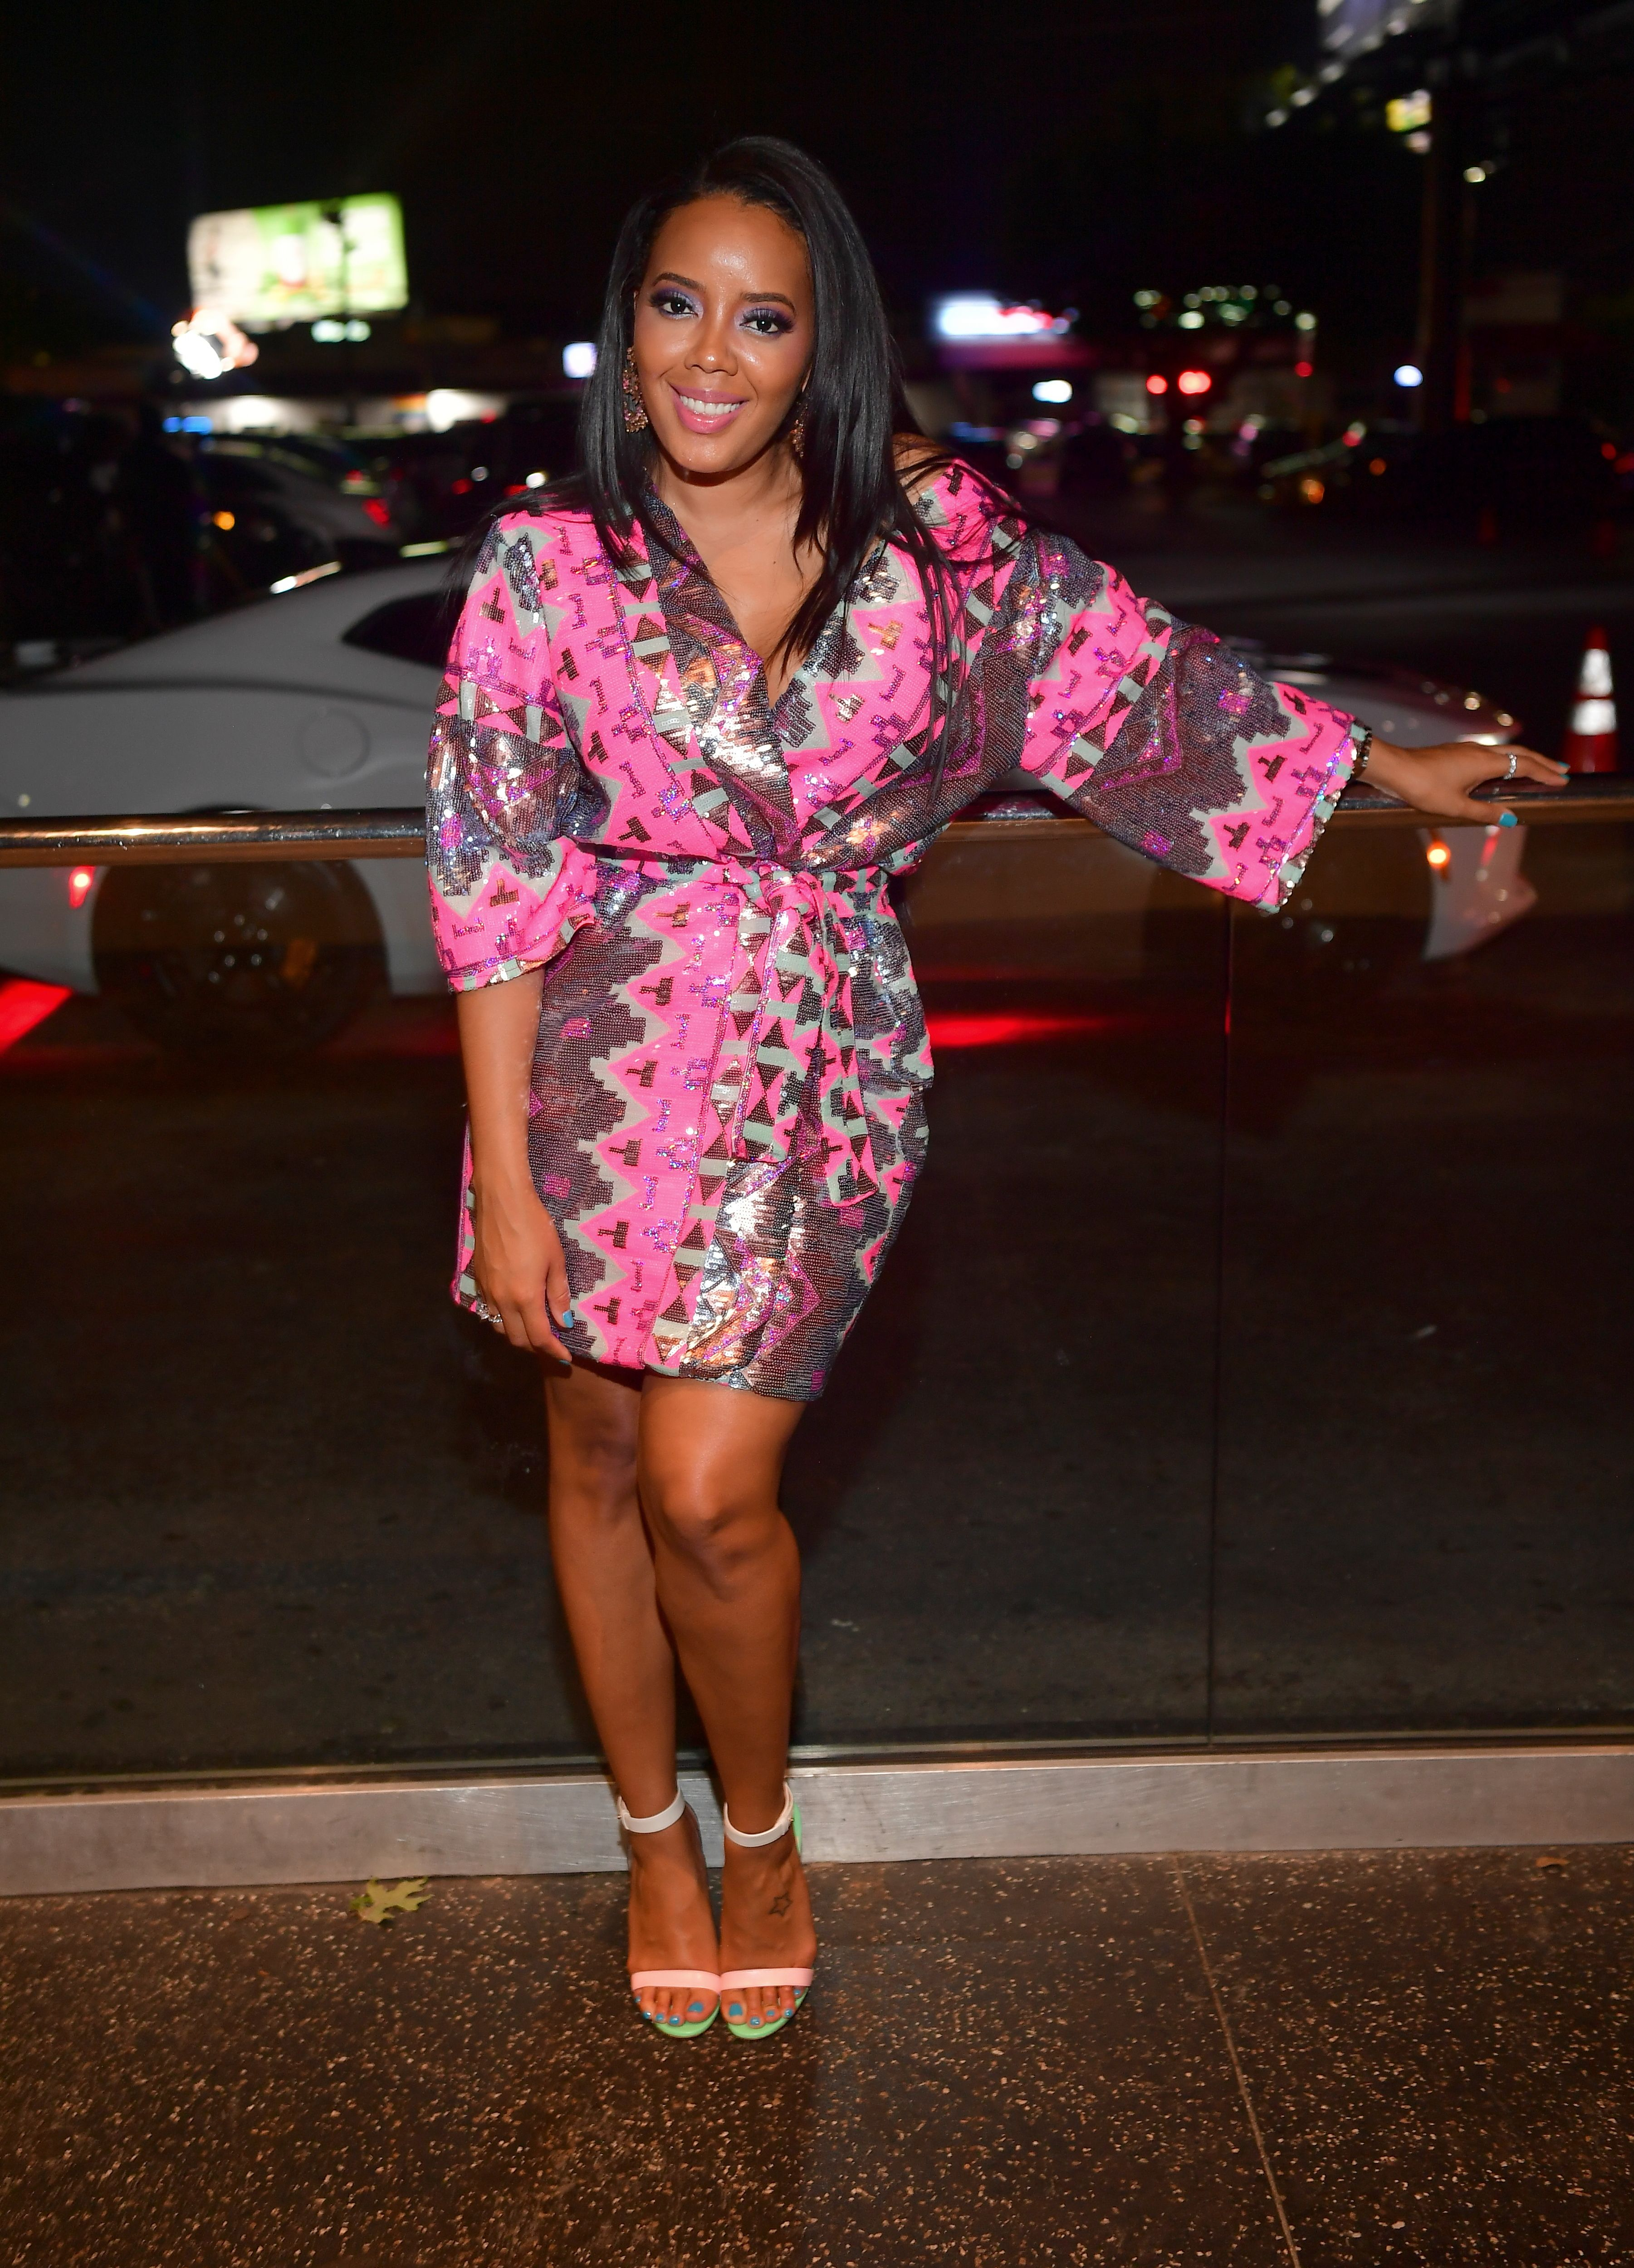 Angela Simmons at the Ladies Love R&B event at Gold Room on May 16, 2019 in Atlanta, Georgia | Photo: Getty Images